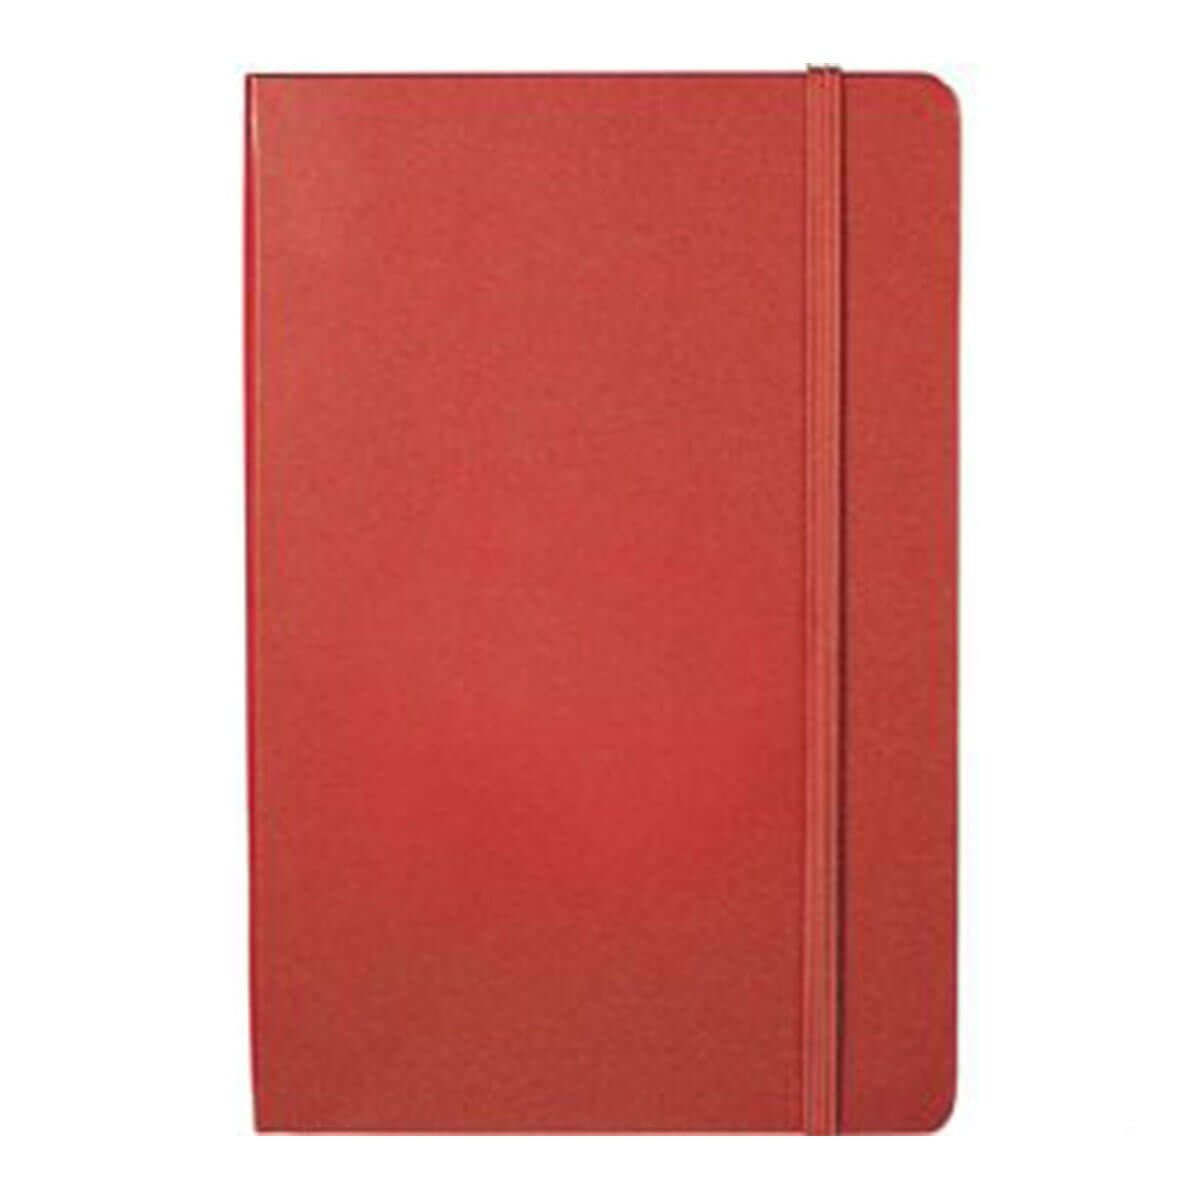 Ambassador Bound JournalBook-Red